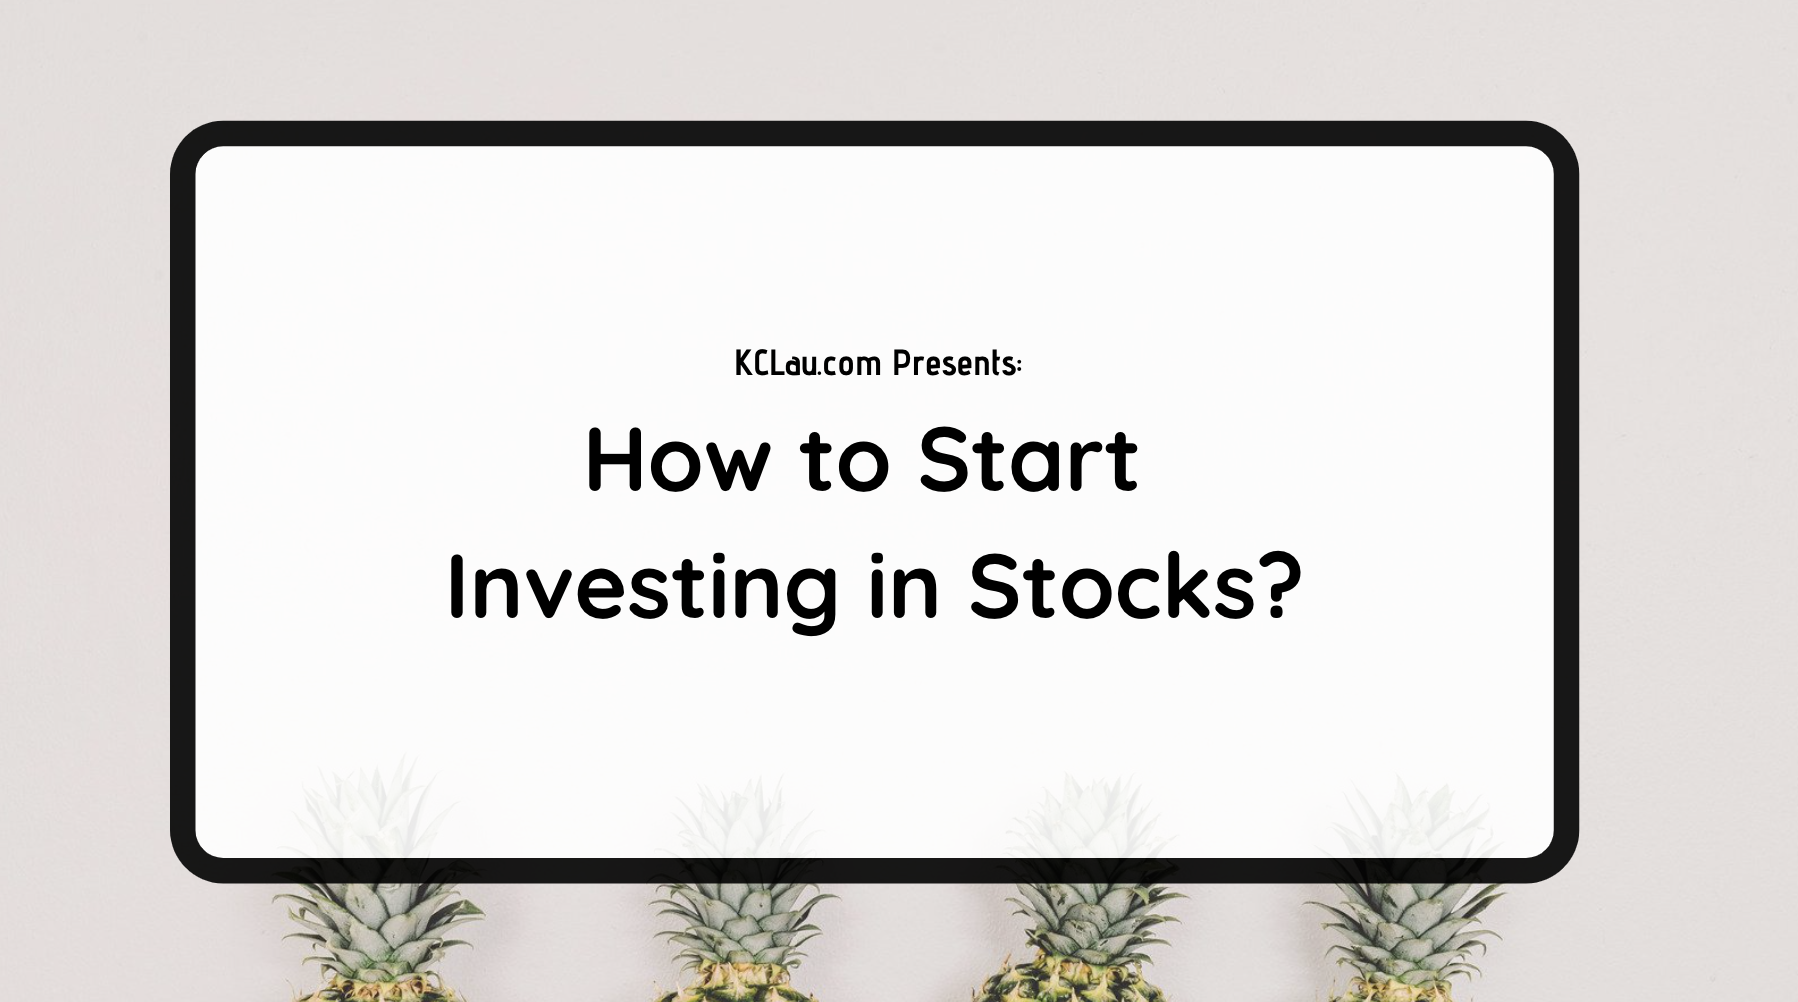 How to Start Investing in Stocks?